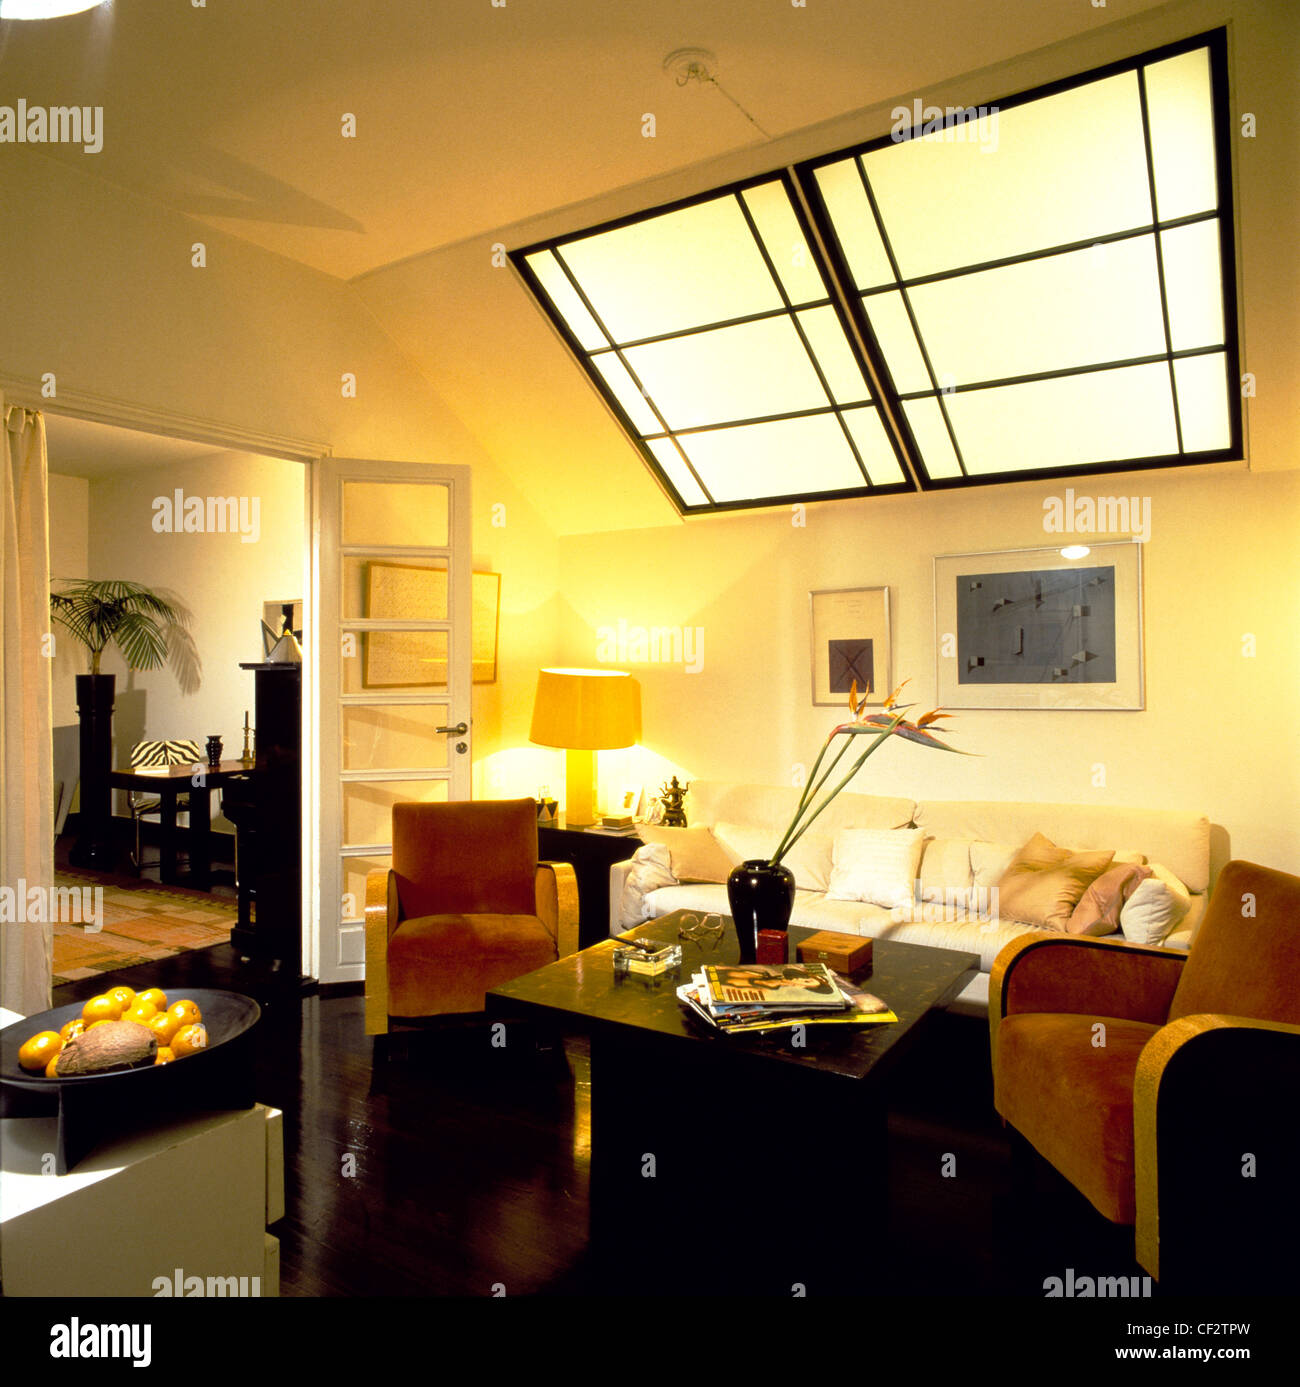 Living room cream walls and ceiling large art deco style skylight ...